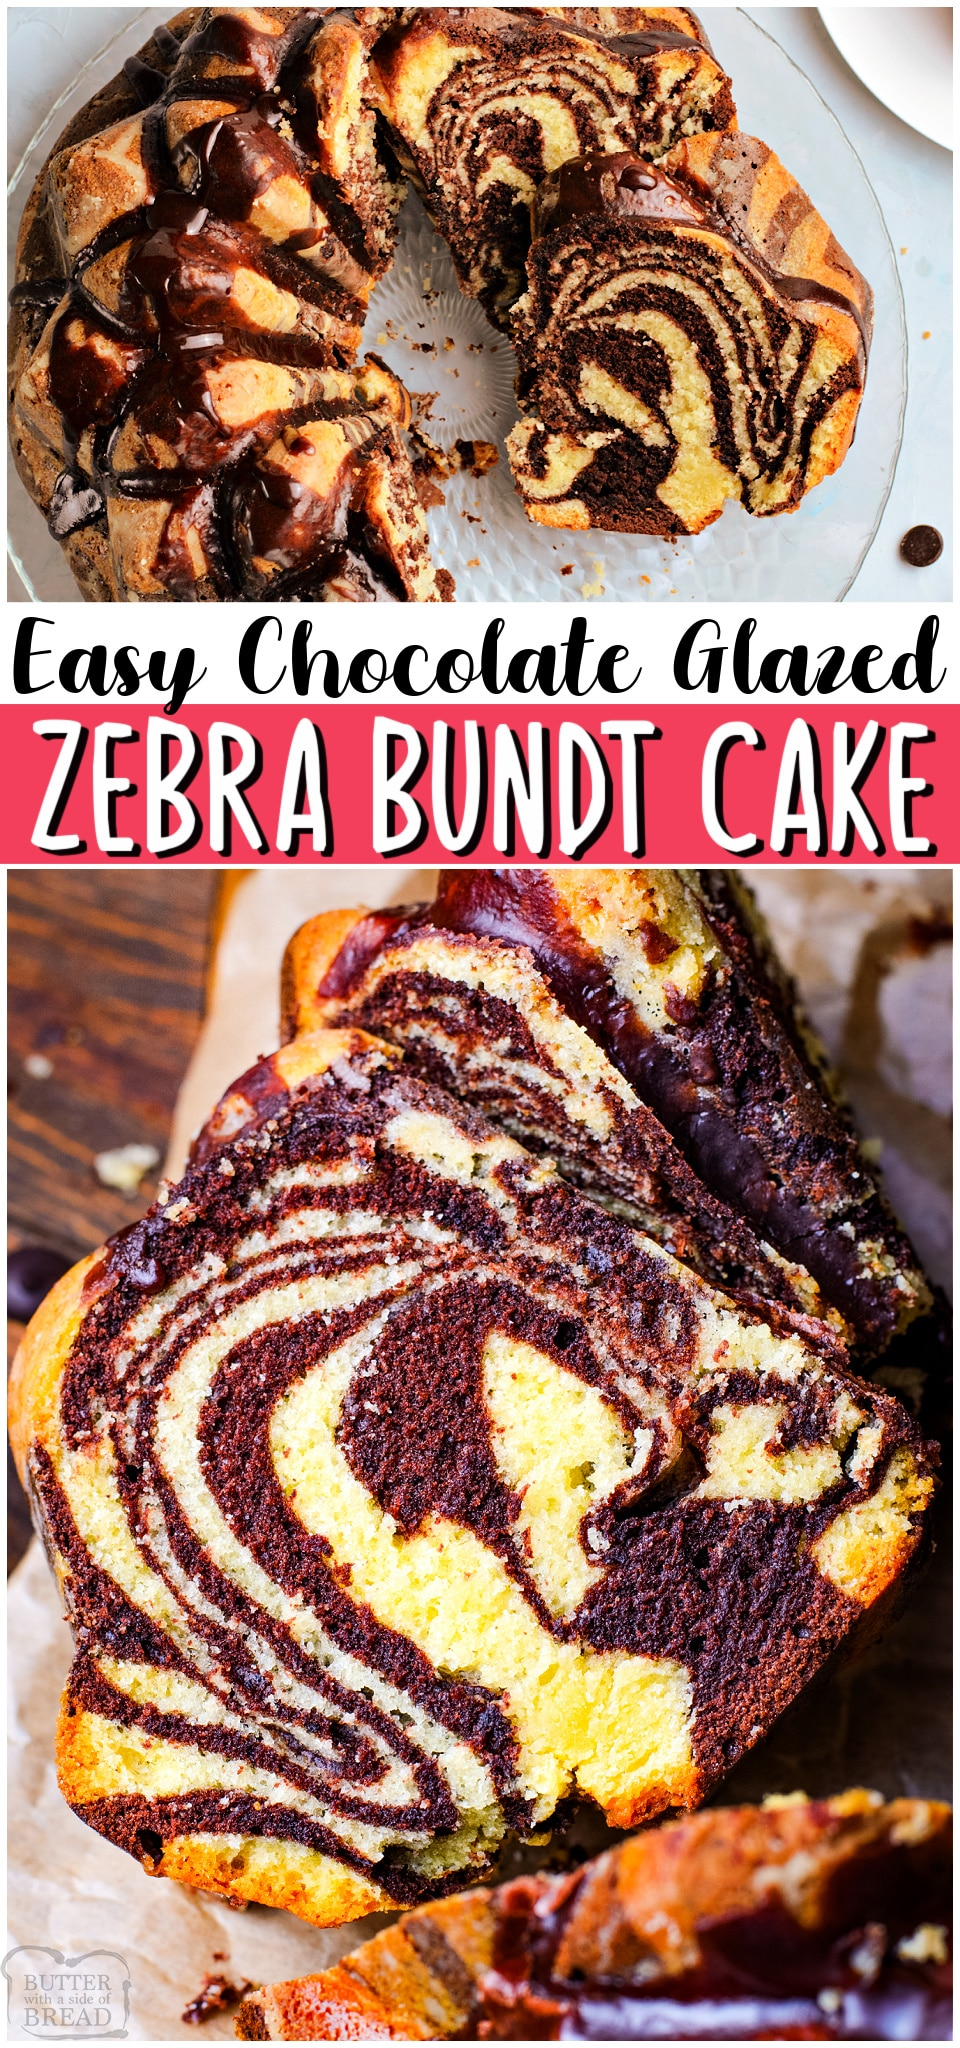 Easy Chocolate Zebra Cake made easy by layering chocolate & vanilla batter in a bundt cake pan! Simple homemade cake that looks incredible, especially topped with a chocolate glaze. #cake #zebra #blackwhite #chocolate #vanilla #homemade #dessert #baking #easyrecipe from BUTTER WITH A SIDE OF BREAD